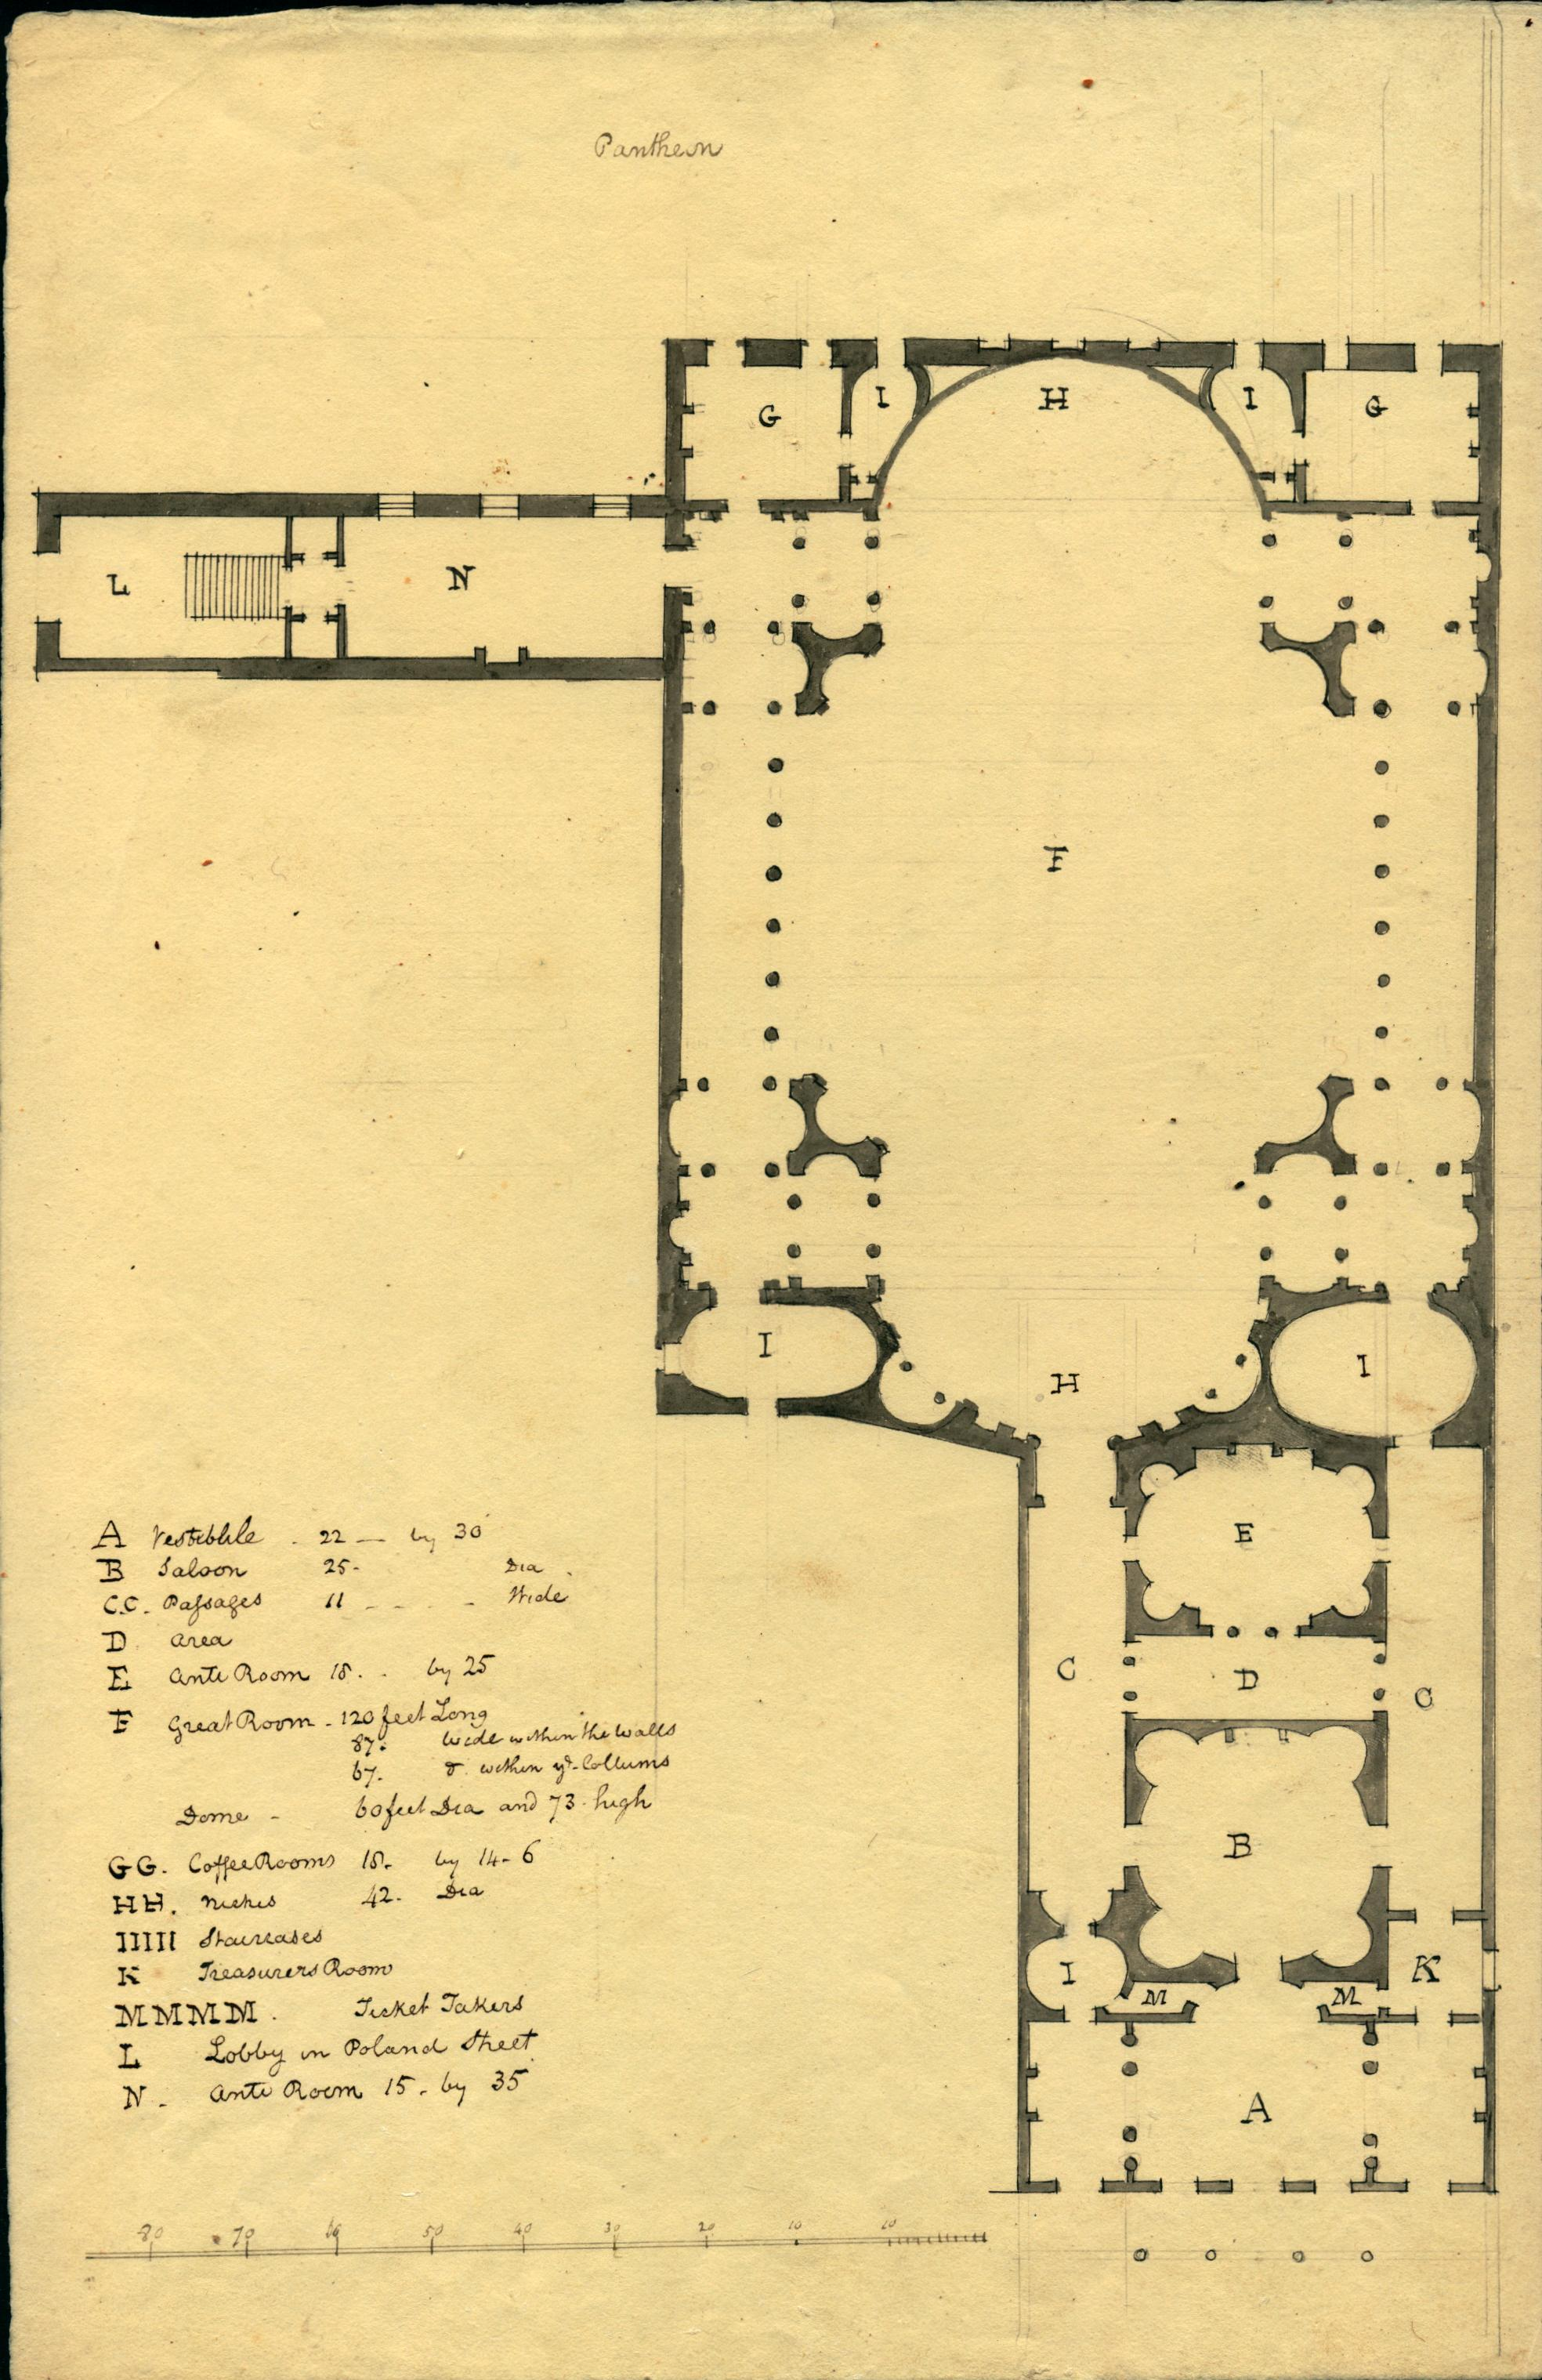 architectural room plan of a theater with list of each room